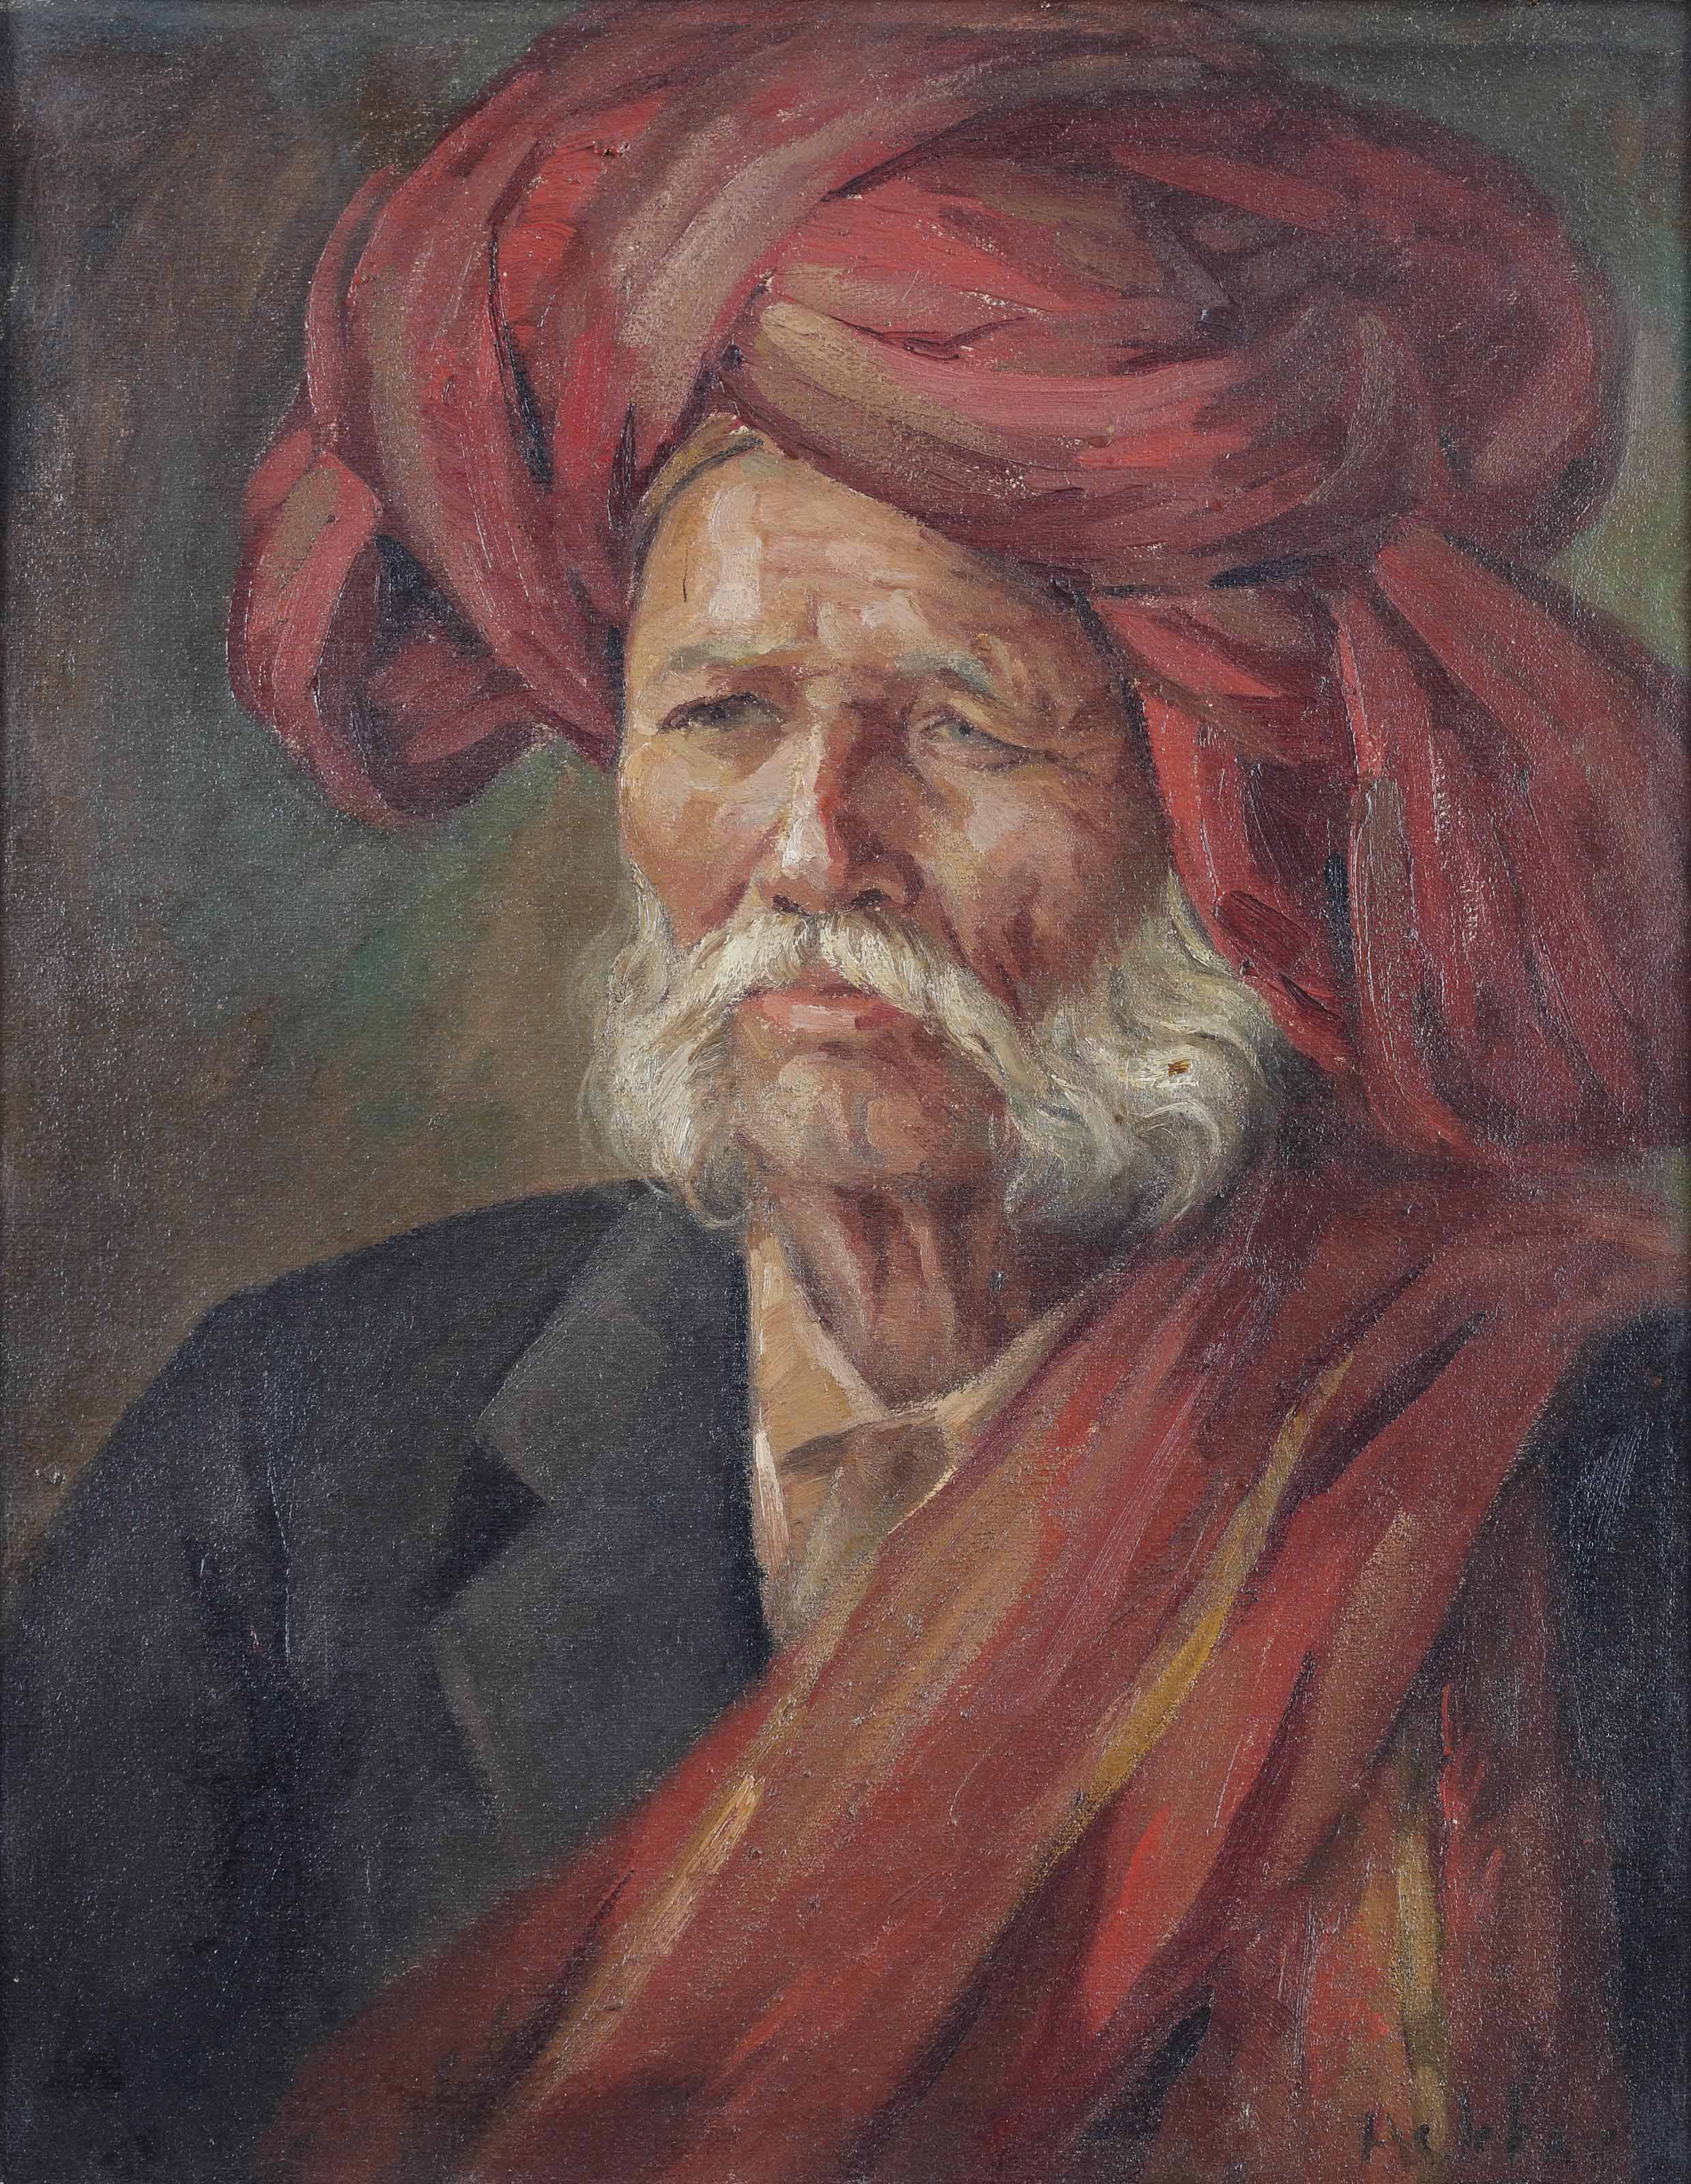 Untitled (Man in Turban)